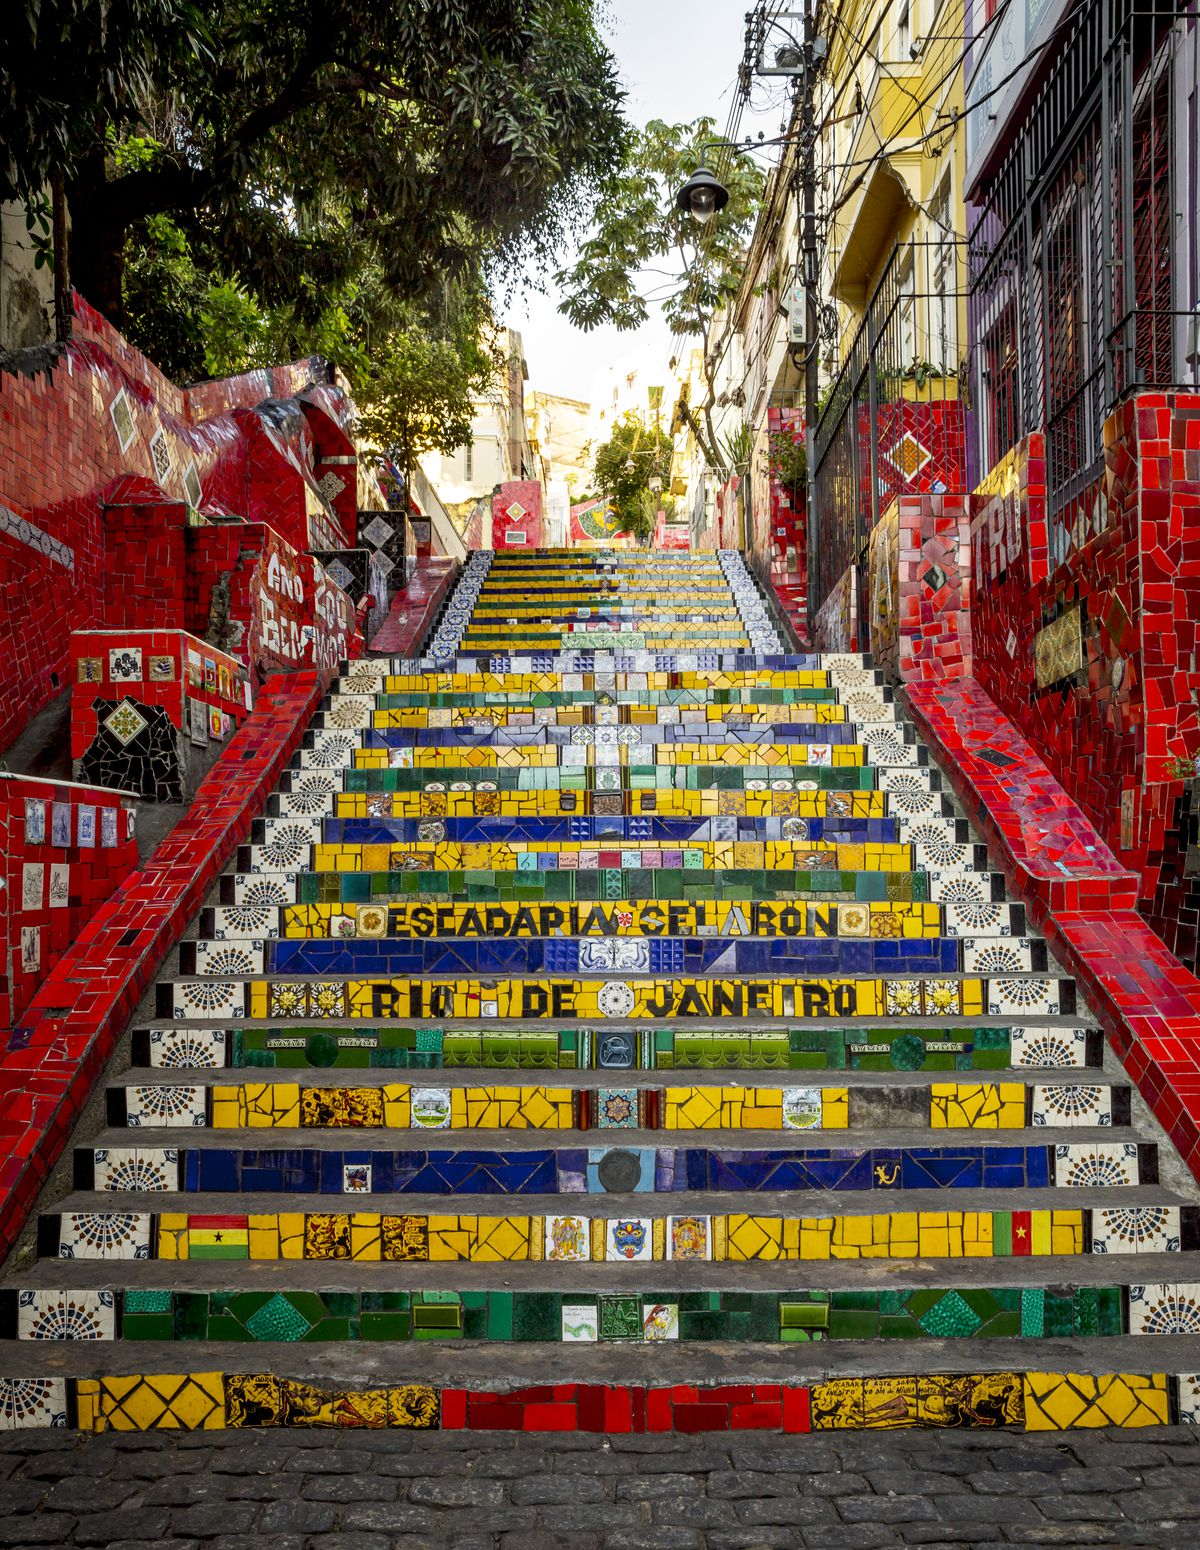 A stairway in Rio de Janeiro in Brazil. The stairway has colorful mosaic tiles that spell out different words. The sides of the staircase are covered with a red pattern. There is a tree at the top of the staircase.